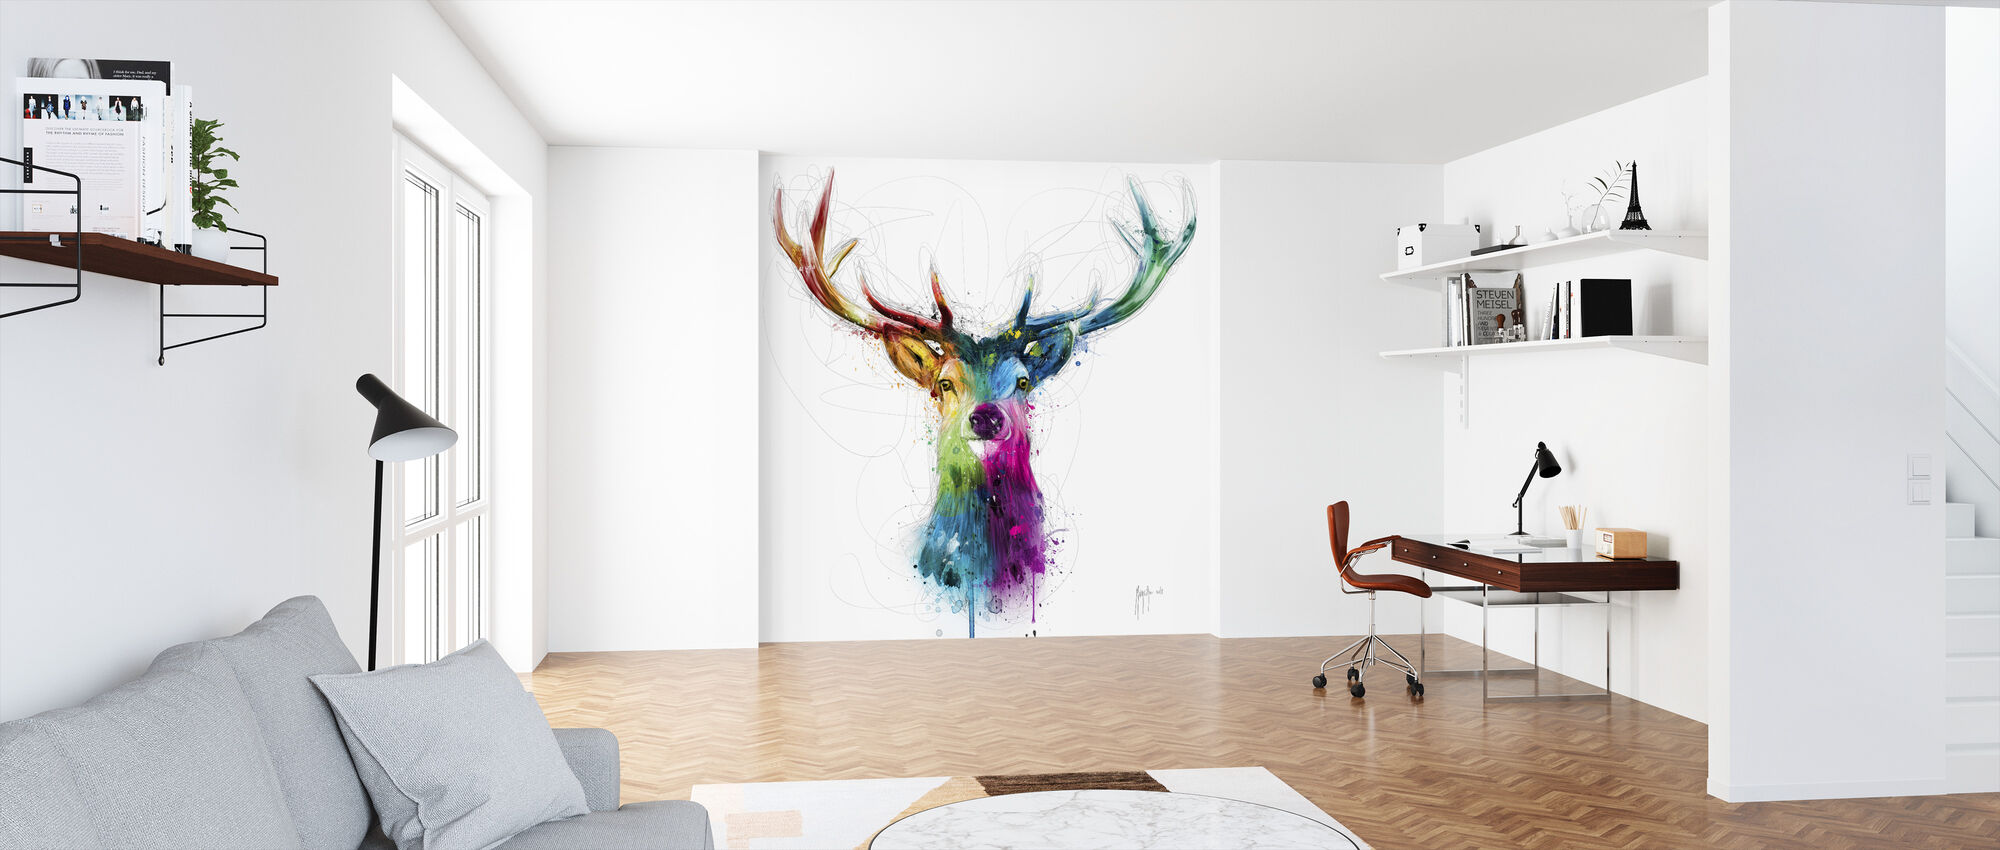 Free and Wild - Wallpaper - Office